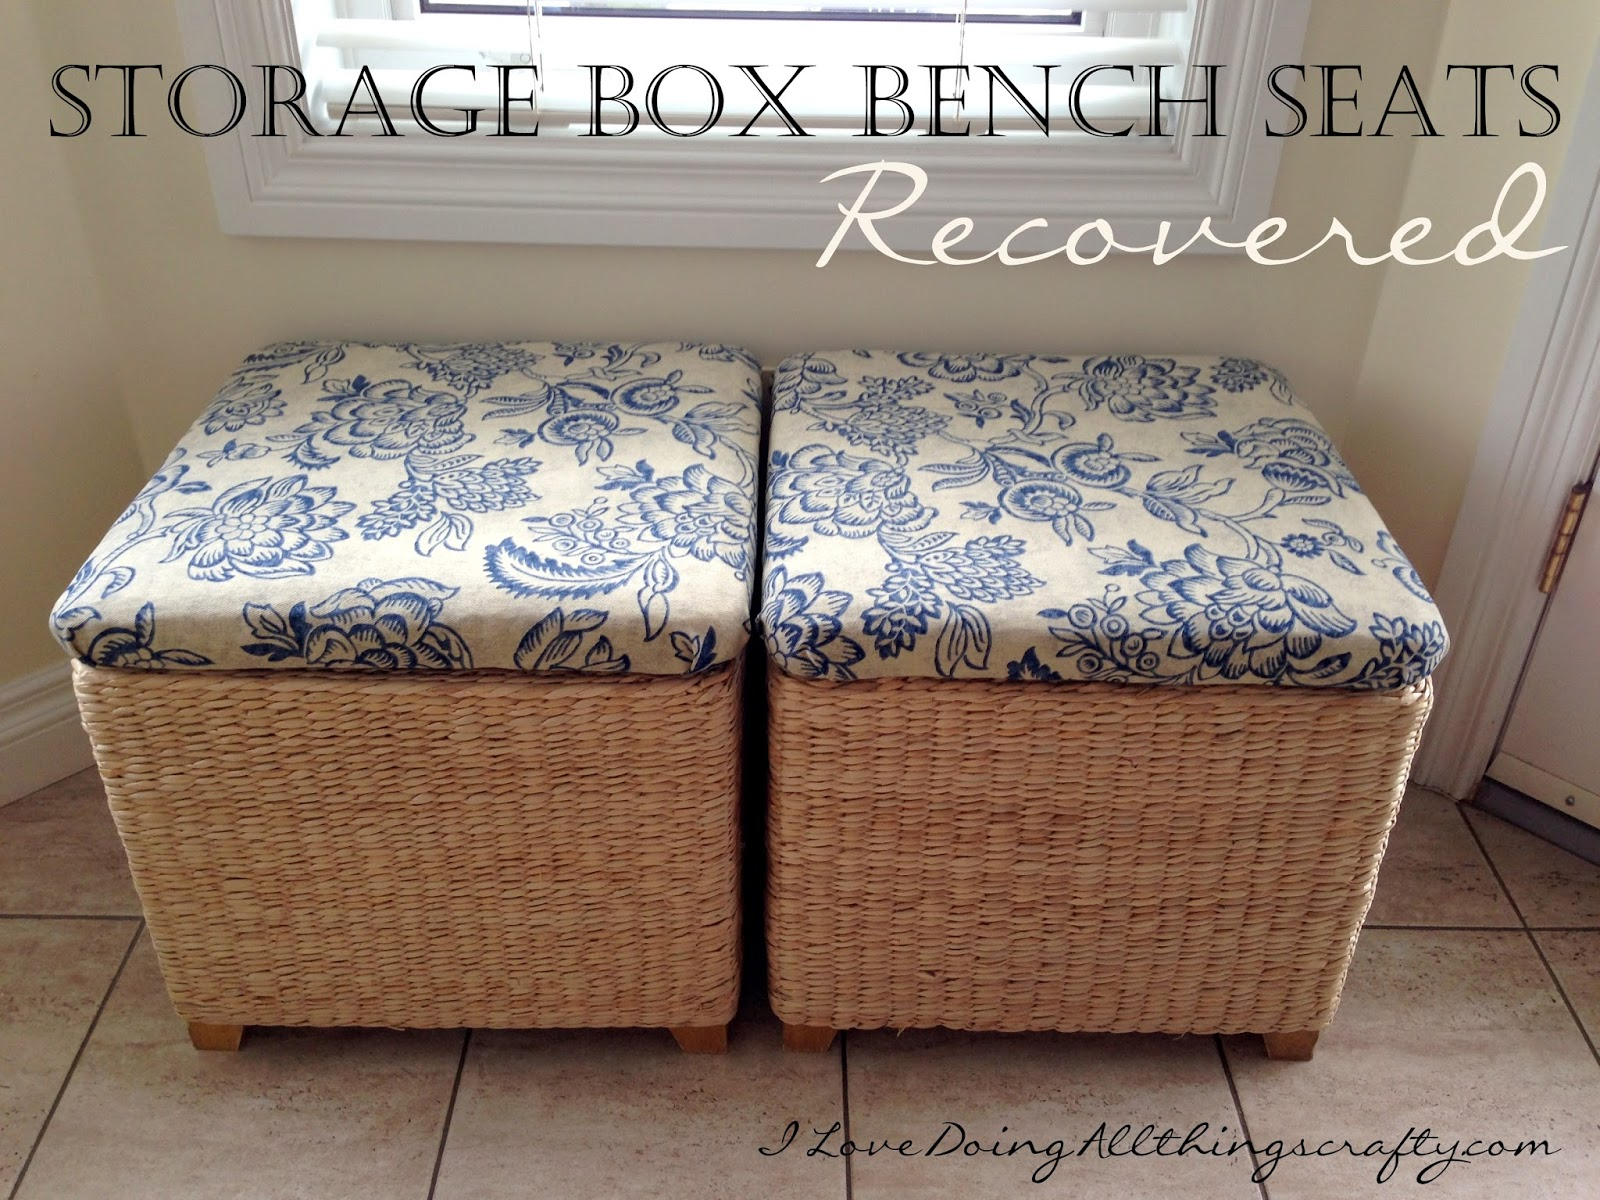 storage box chair philippines cover rentals in chicago i love doing all things crafty bench seats